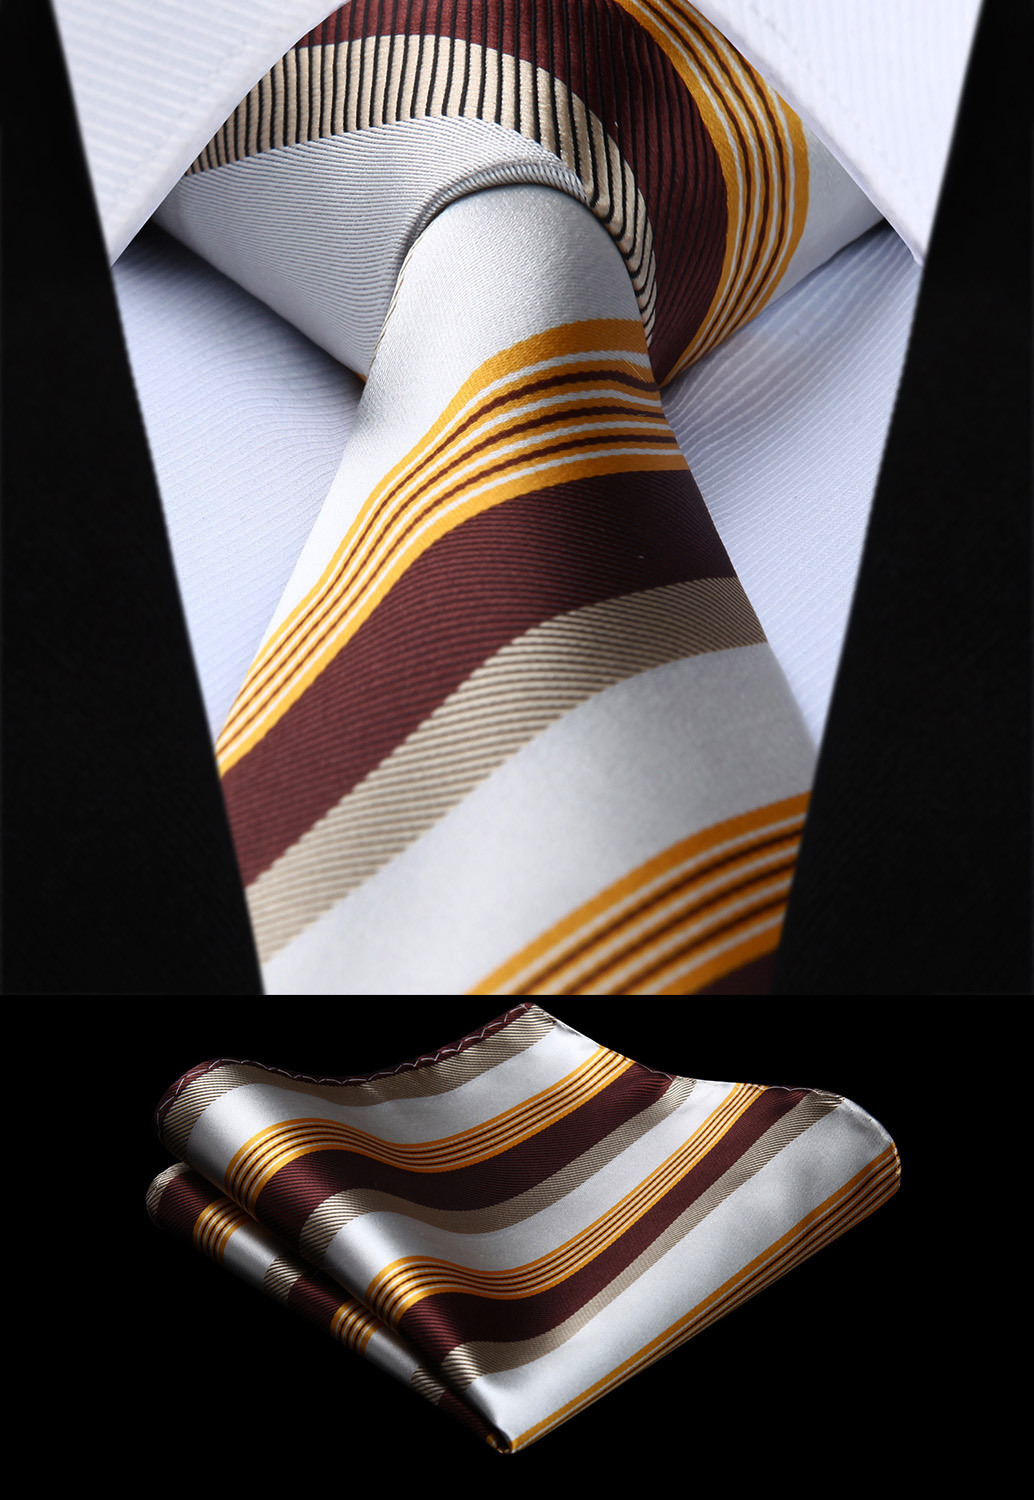 Woven Men Tie Brown Yellow White Striped Necktie Handkerchief Set# TS612Y8S Party Wedding Classic Pocket Square Tie